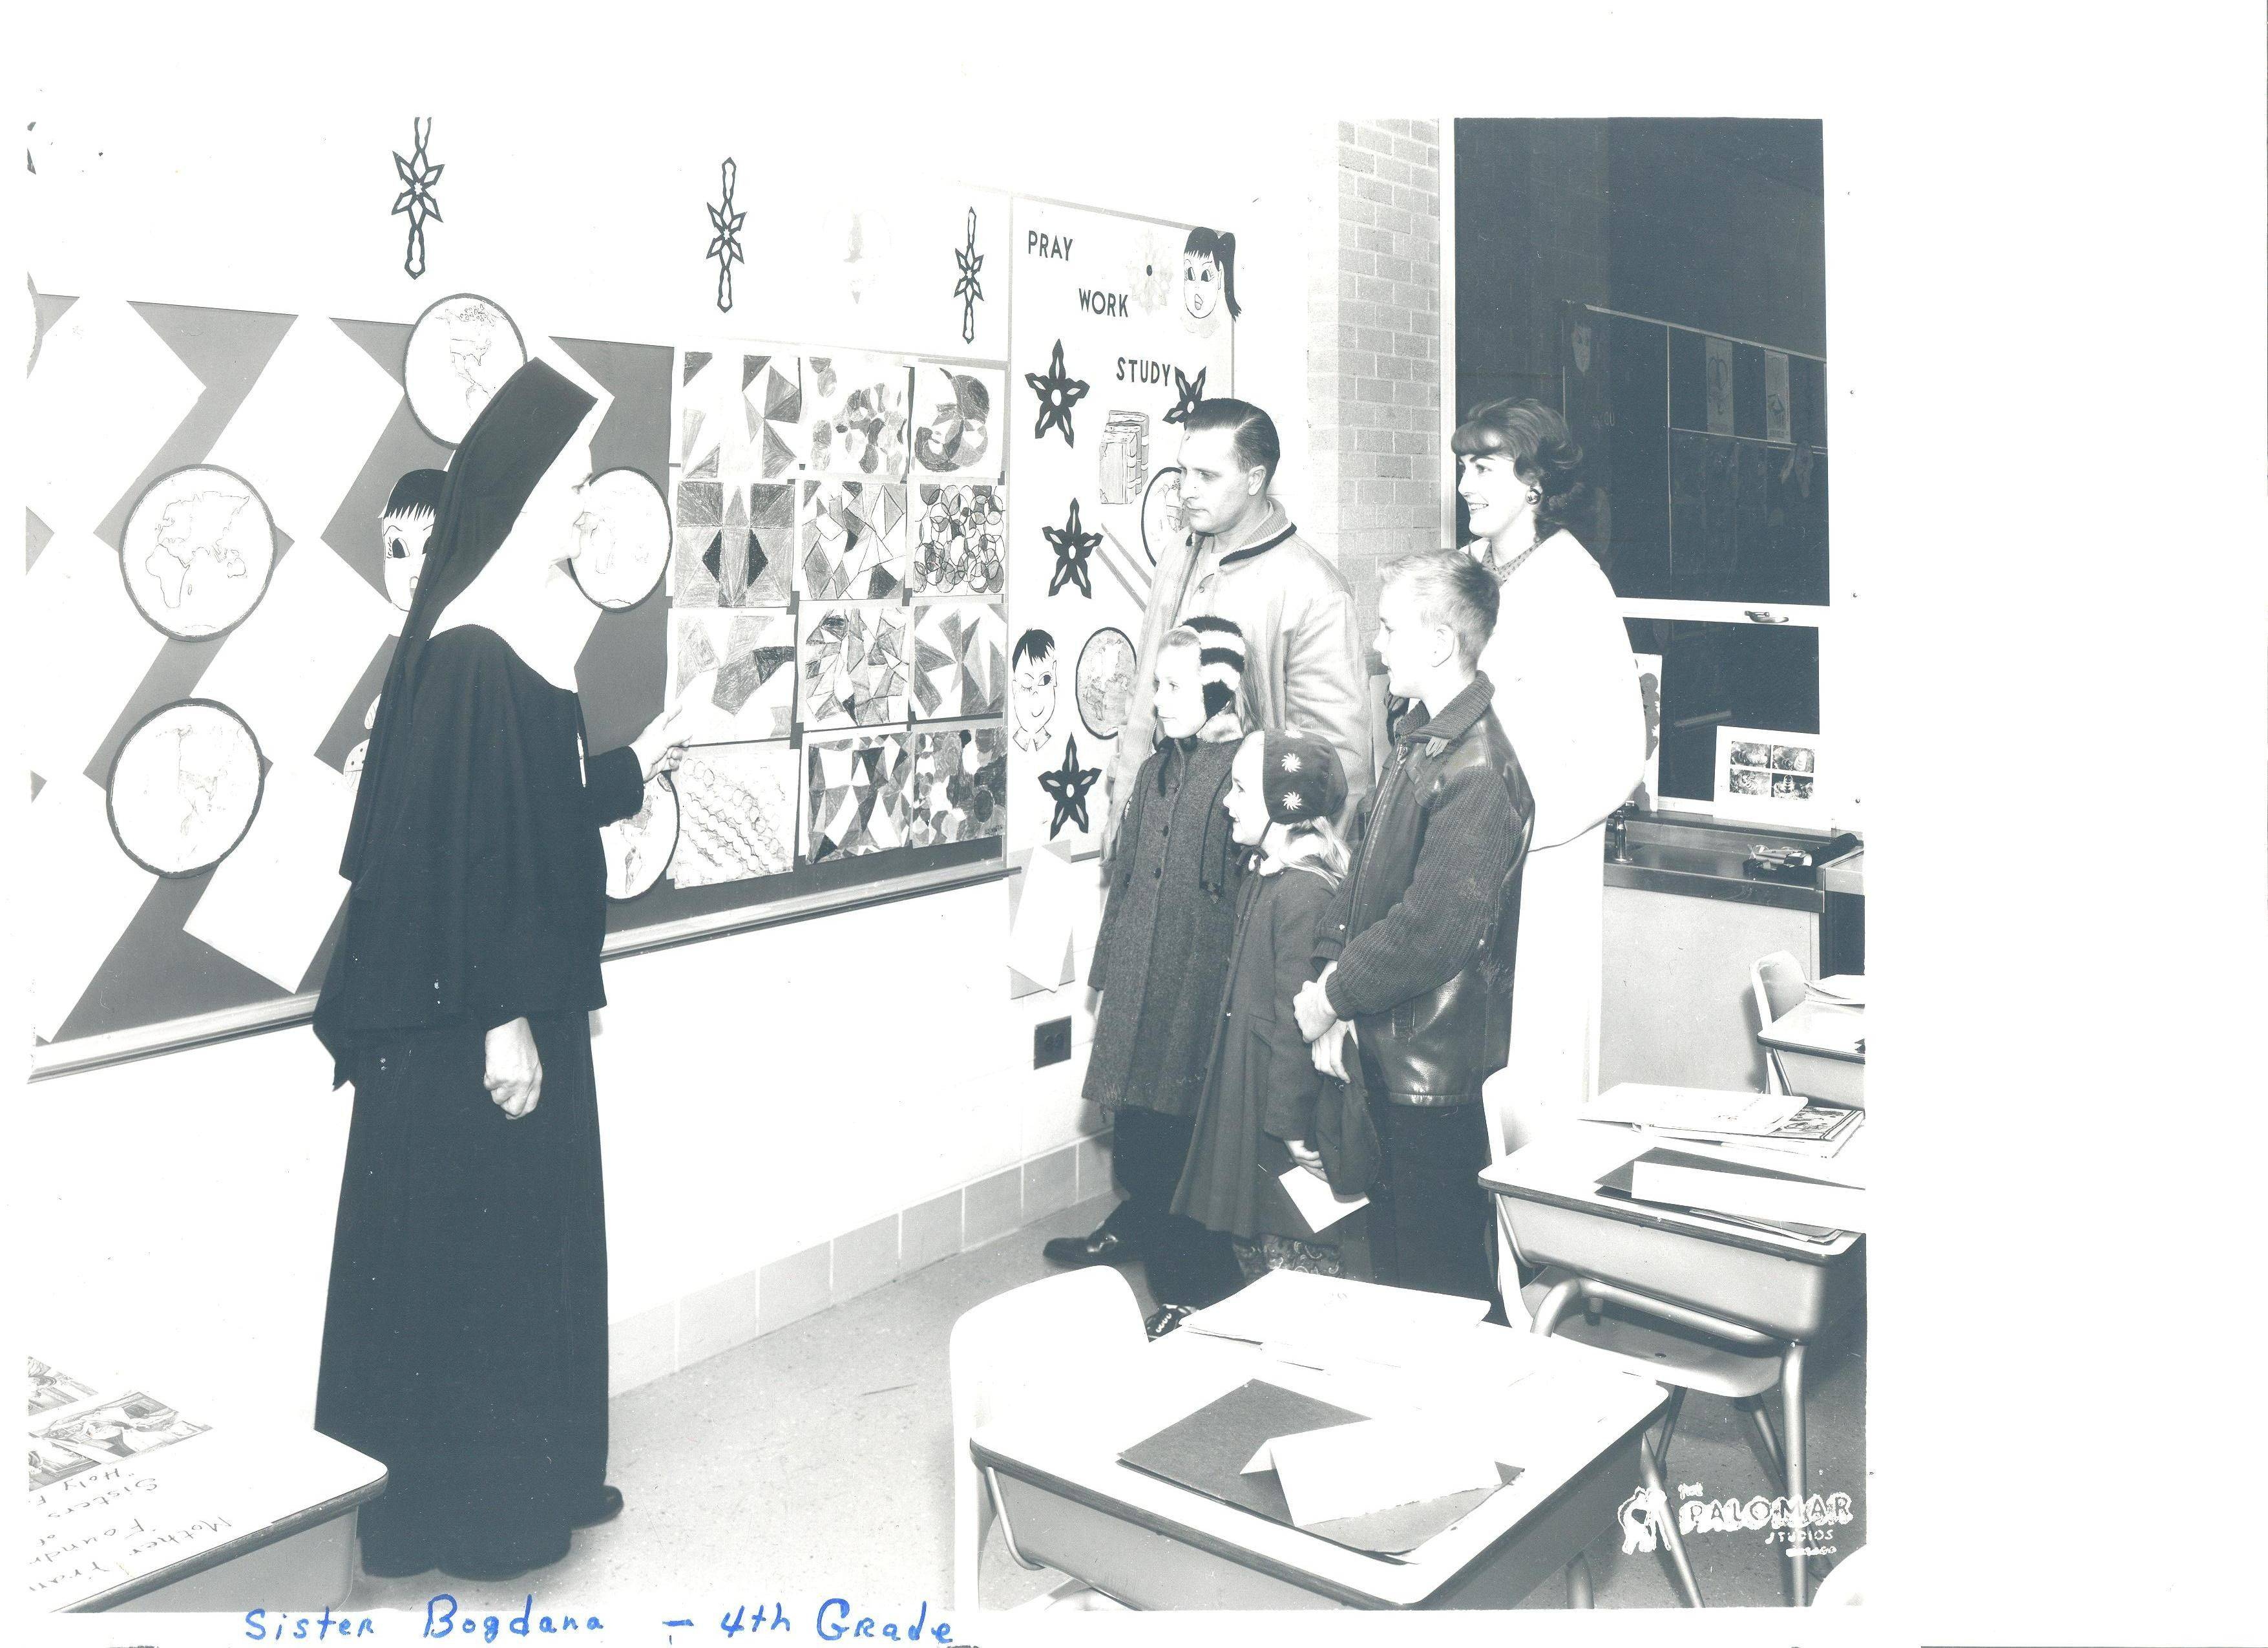 Sr. Bogdana greets a family in her fourth-grade classroom in 1963 at St. Emily School.